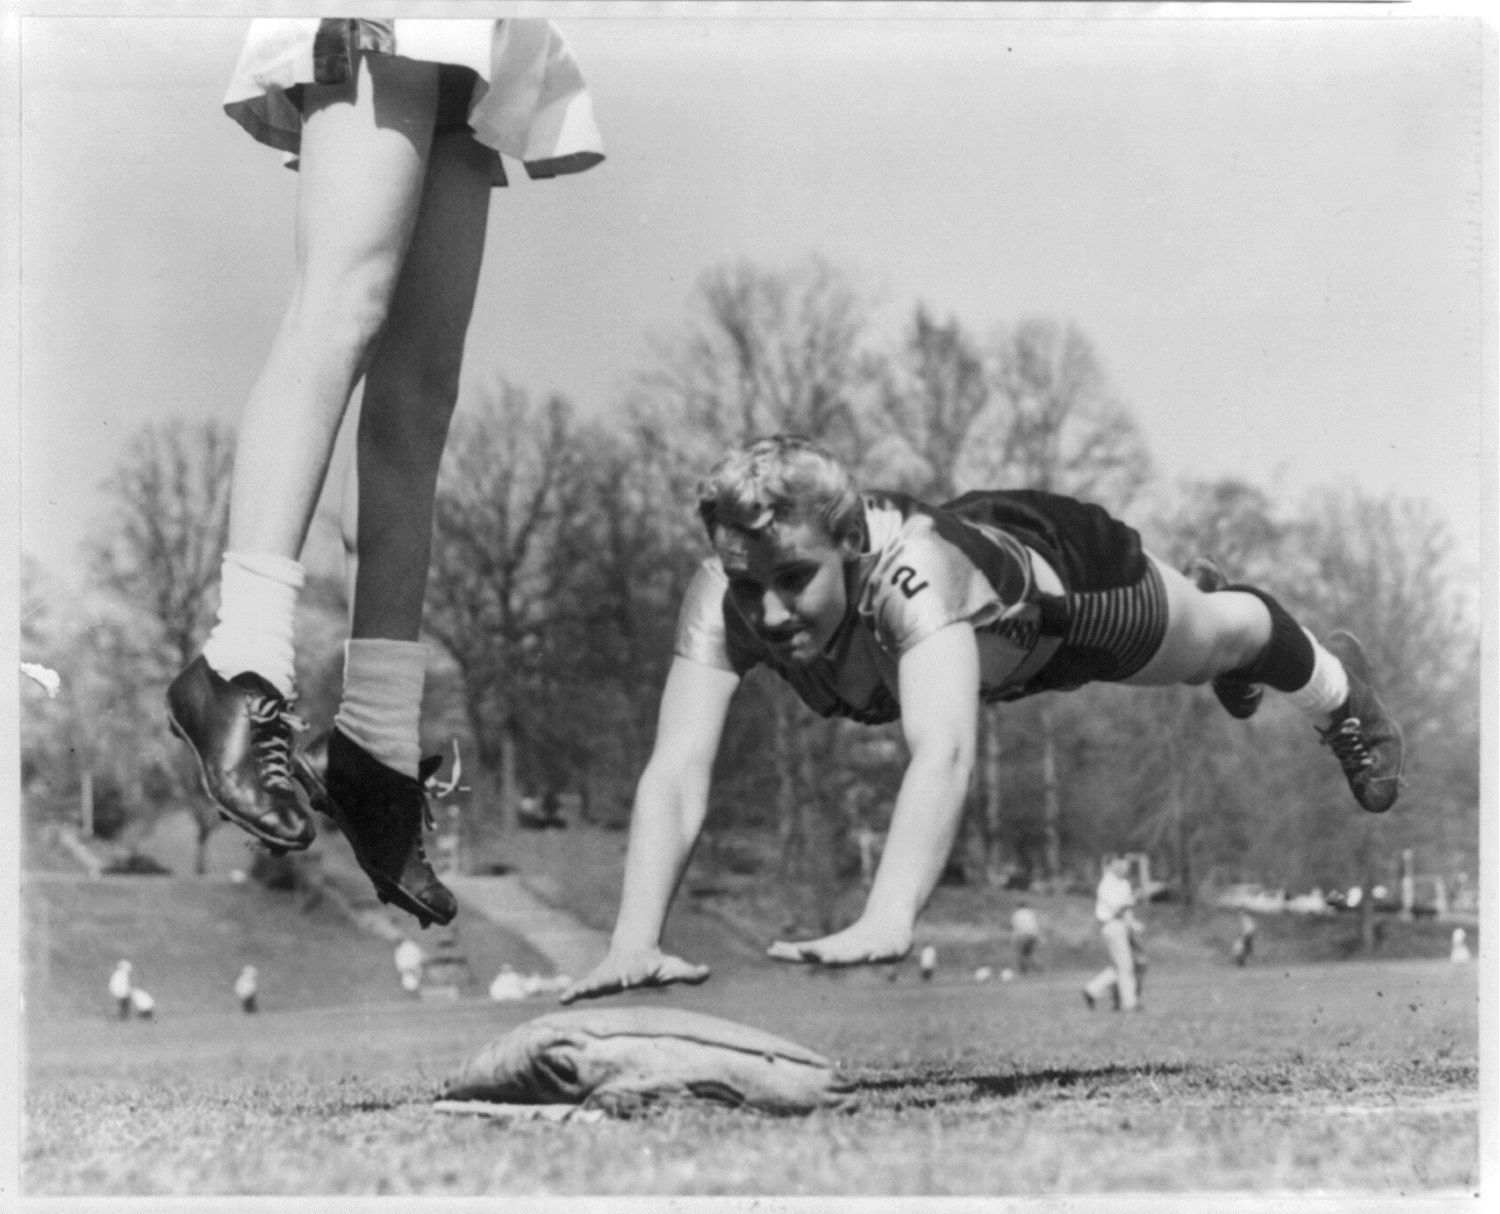 Photograph shows Linda McConkey, of the Lorelei Ladies softball team, diving for third base during an exhibition game; also shows the legs of Jerrie Rainey, playing third base for the Atlanta Tomboys, as she jumps for the ball in Atlanta, Georgia. (Courtesy: Library of Congress)